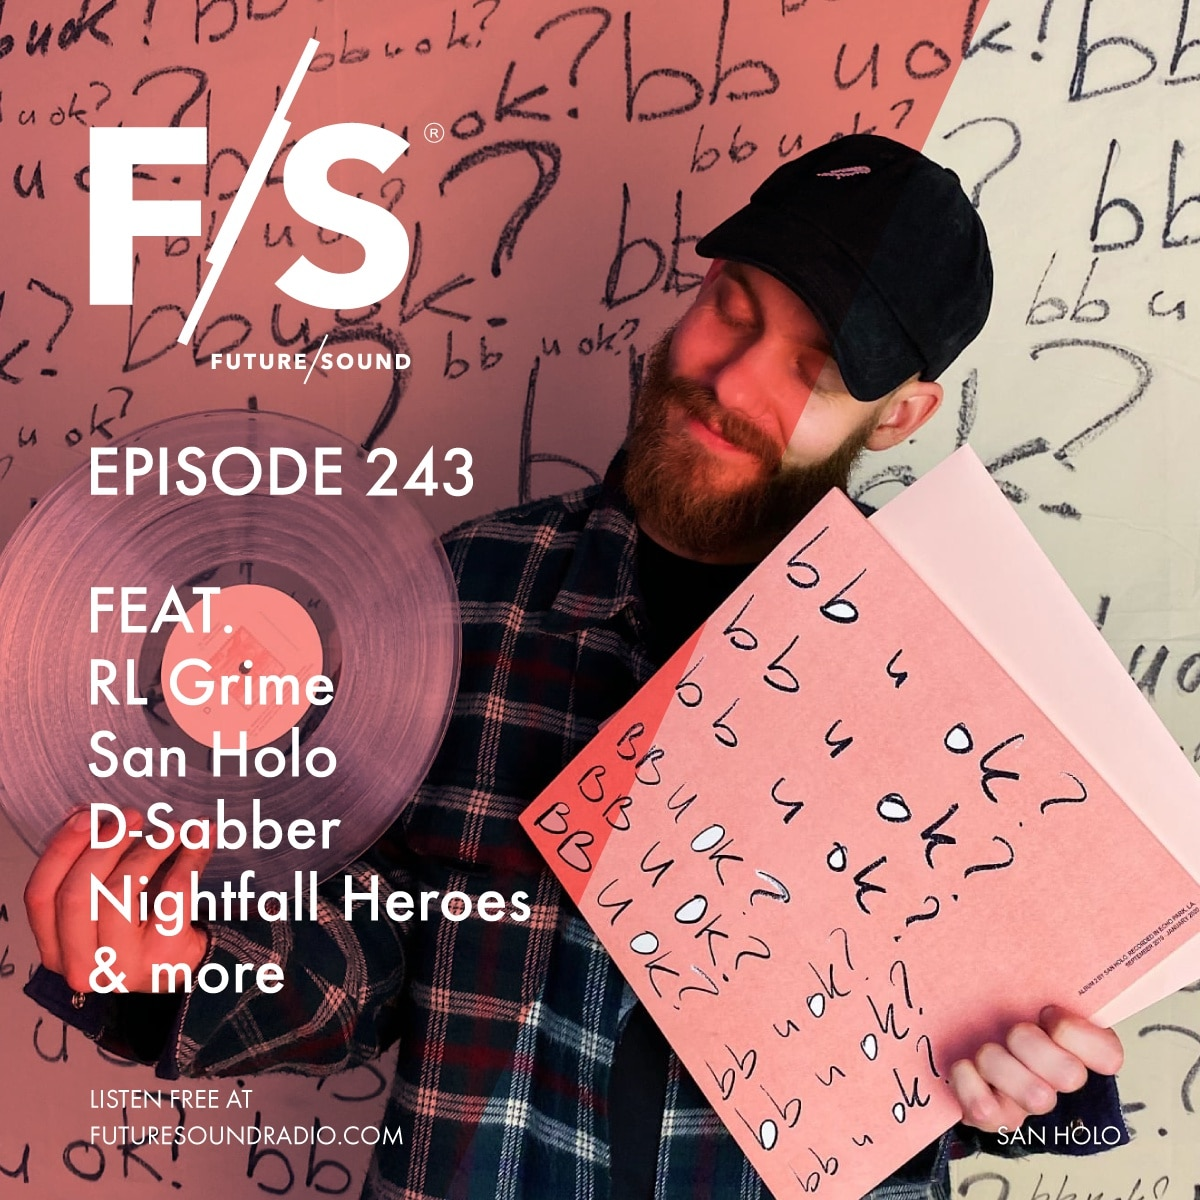 Future/Sound Episode 243 feat. RL Grime, San Holo, D-Sabber, Nightfall Heroes, and more